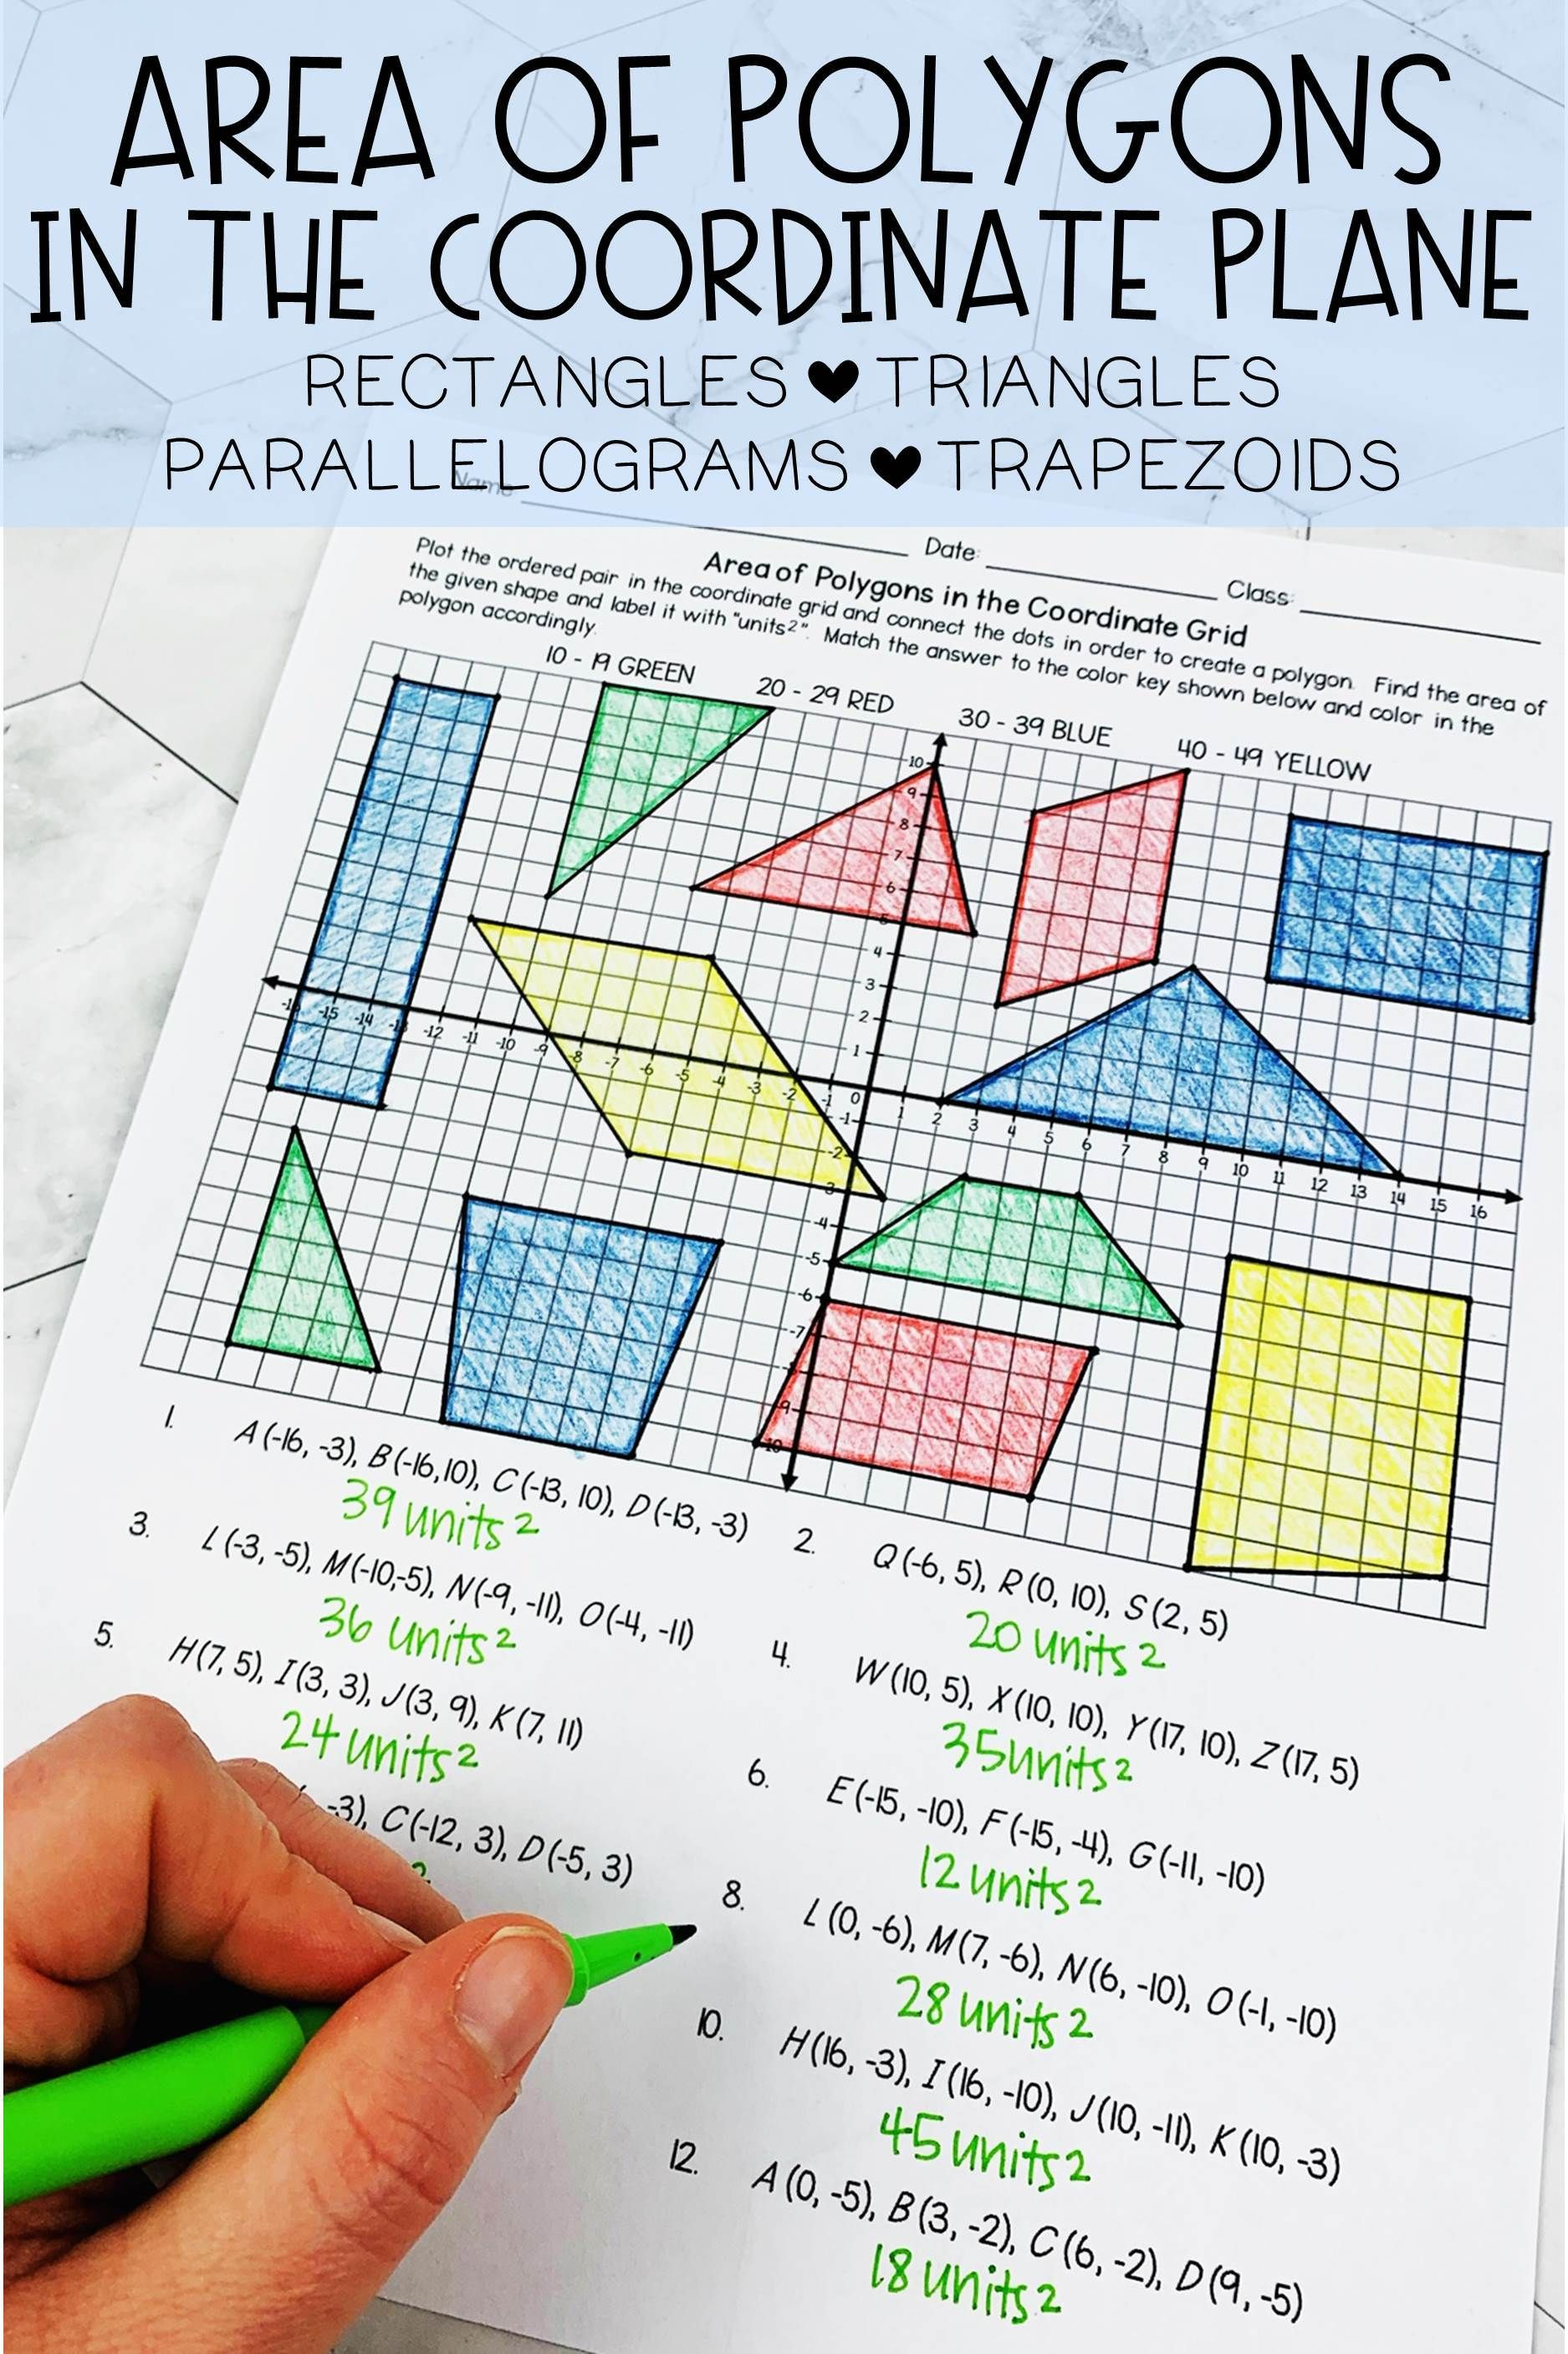 small resolution of Area of Polygons in the Coordinate Plane Coloring Activity   Coordinate  plane